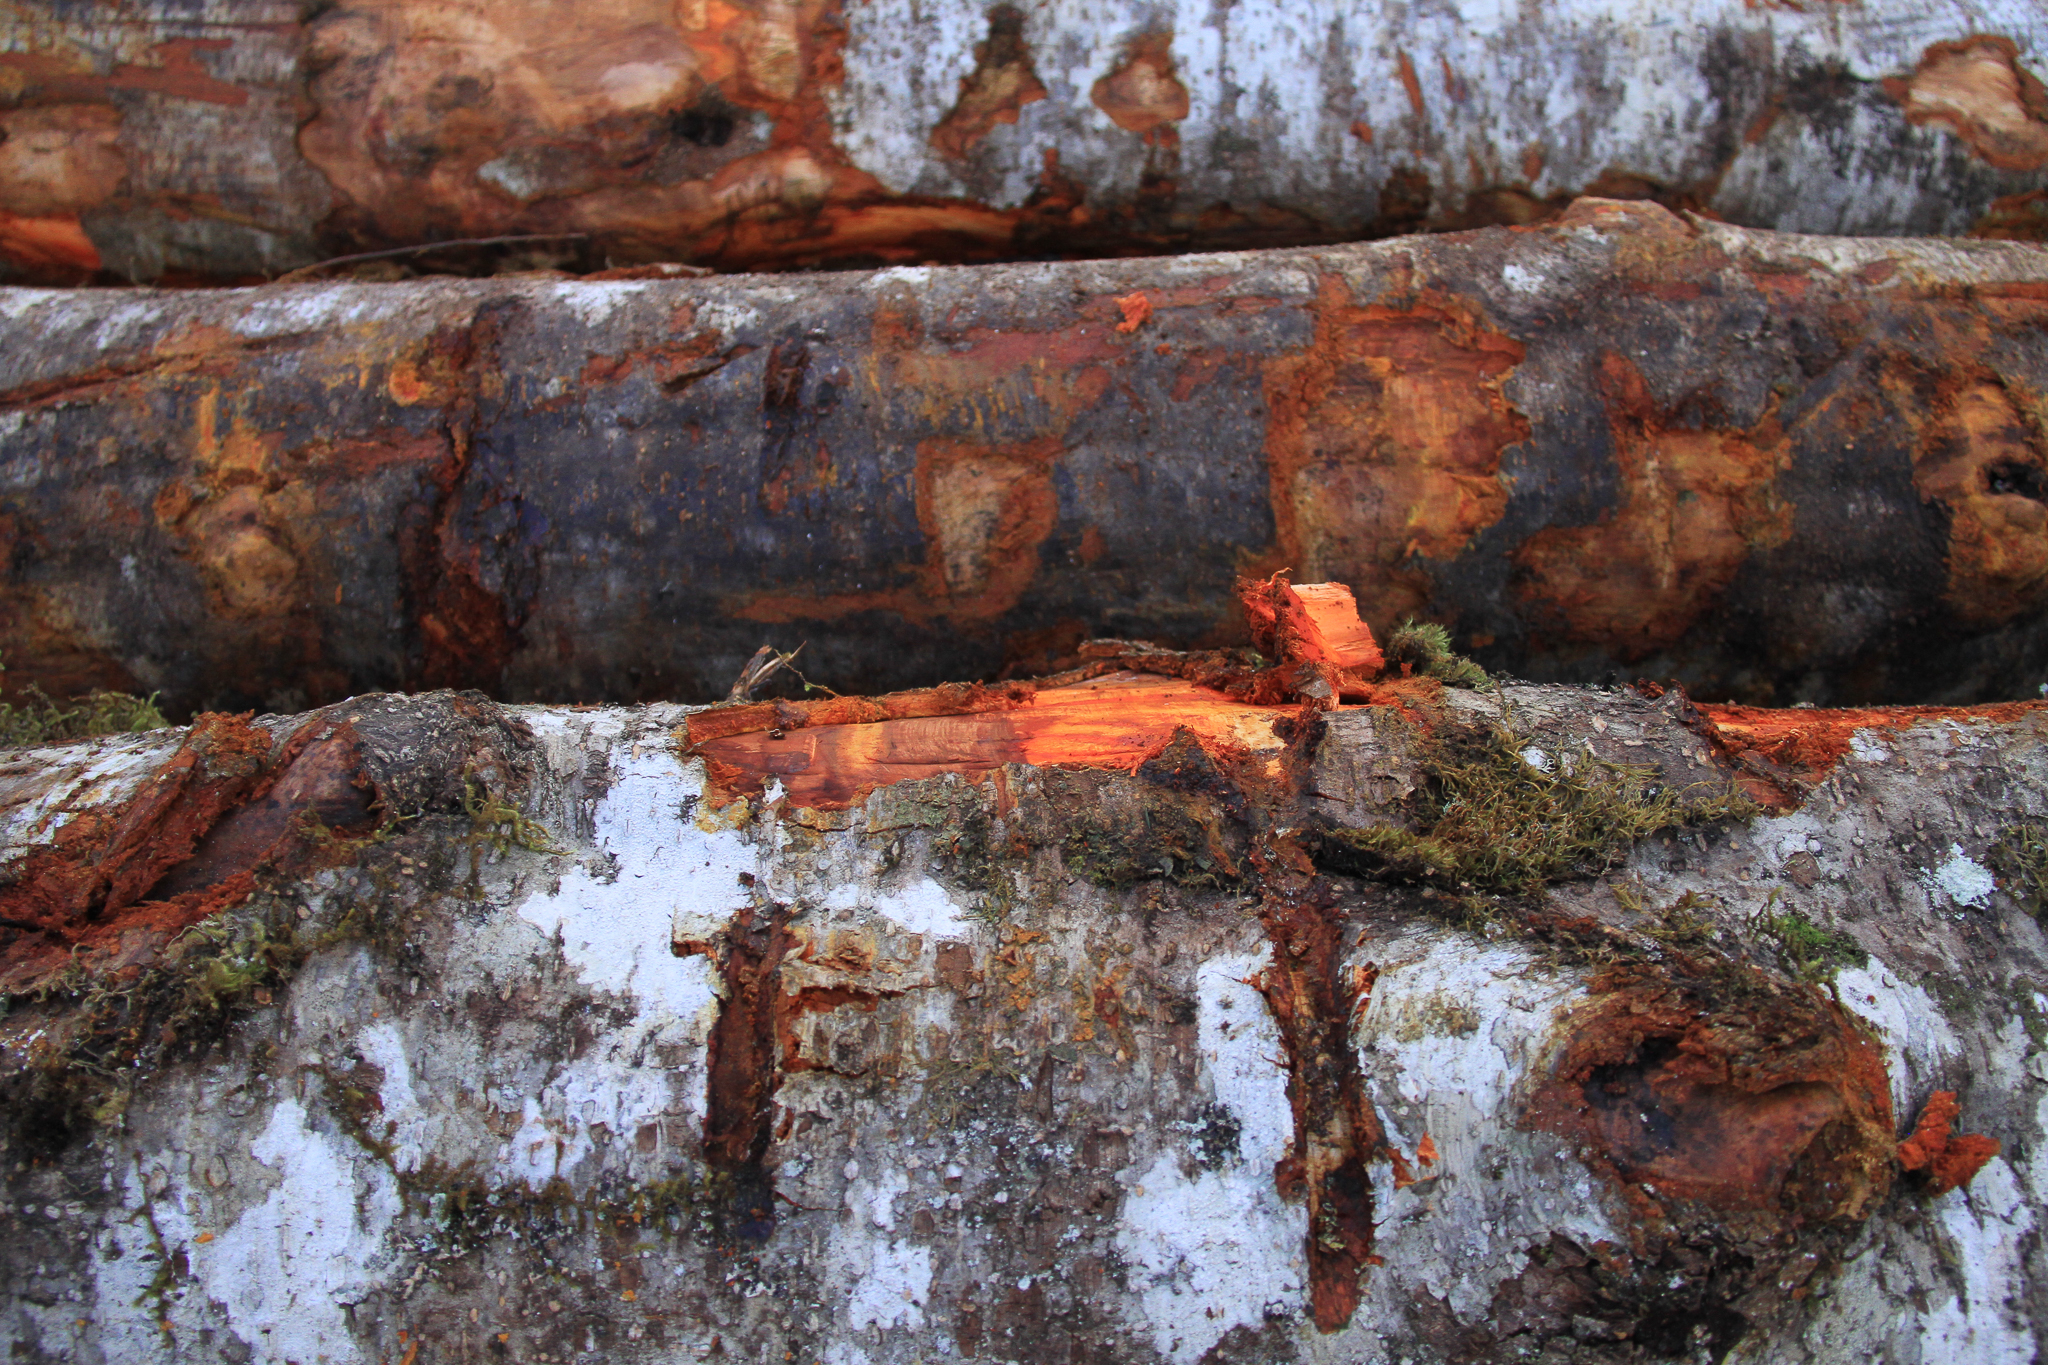 Young-growth red alder trees at Icy Straits Lumber, near Hoonah Alaska. Miller owner Wes Tyler is experimenting with turning the beautiful wood into tables.